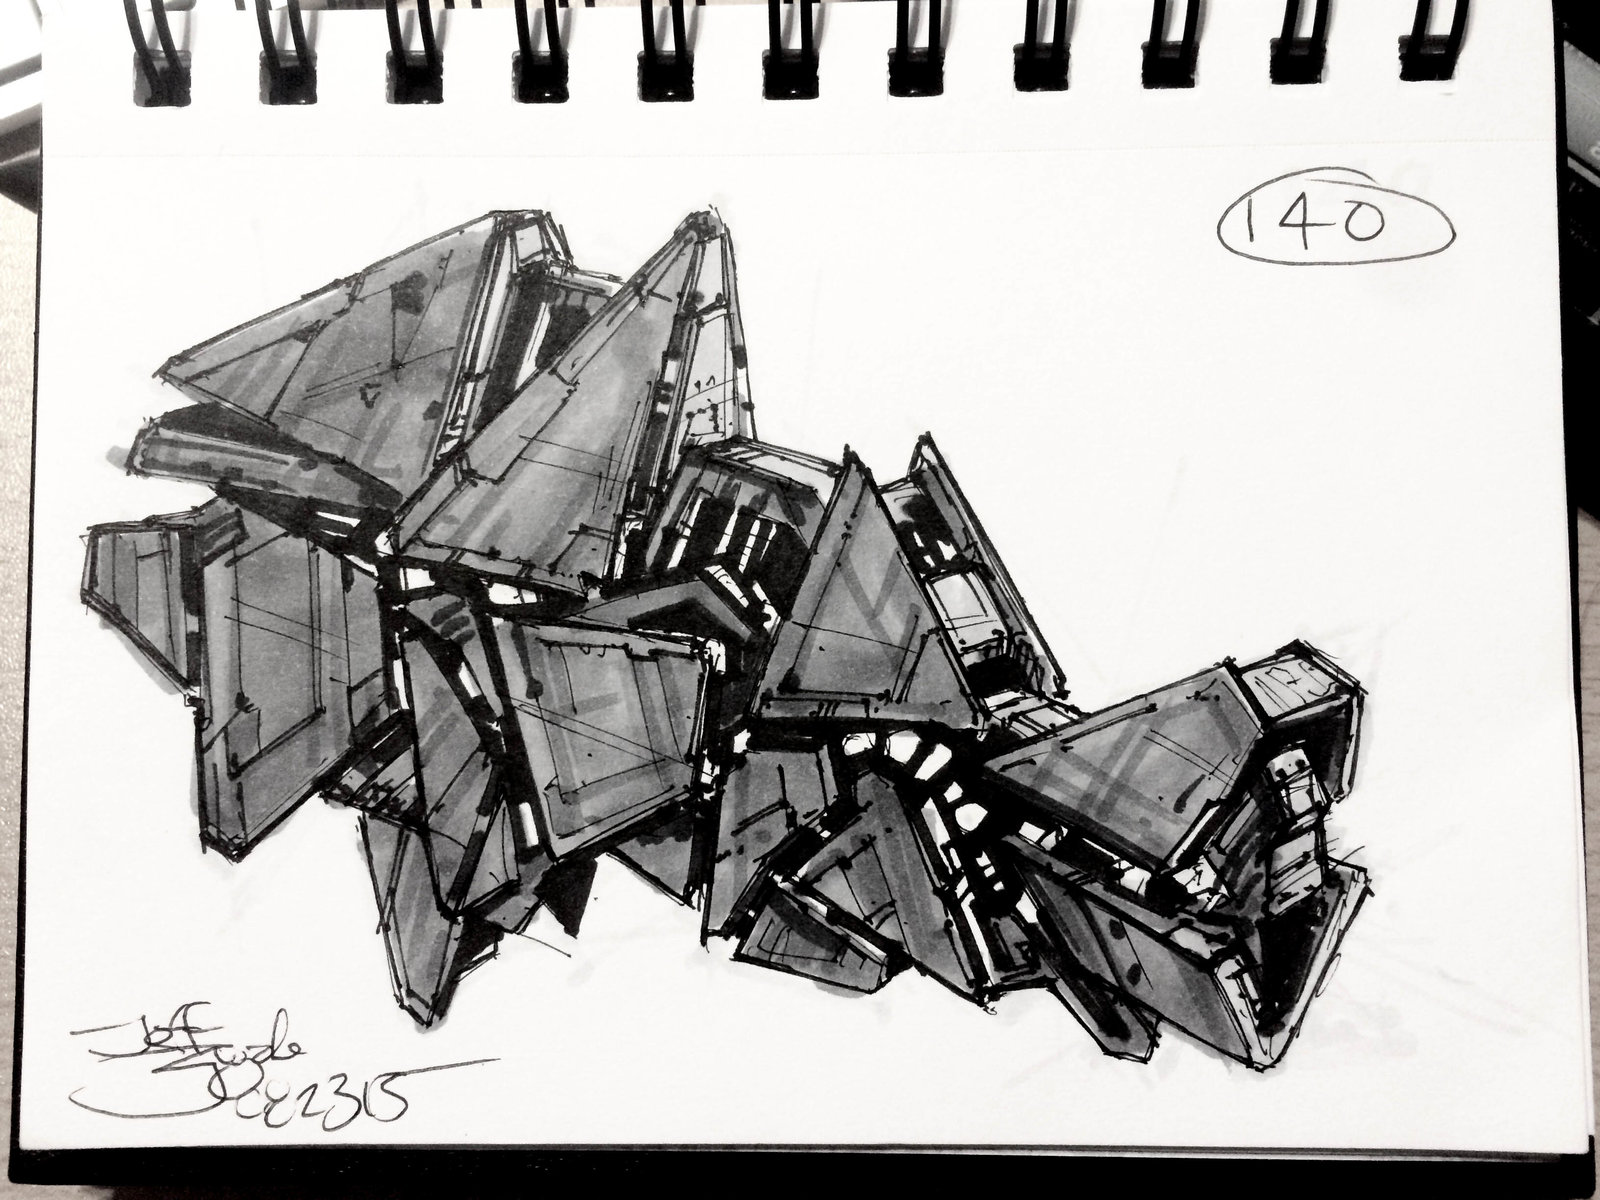 SpaceshipADay 140